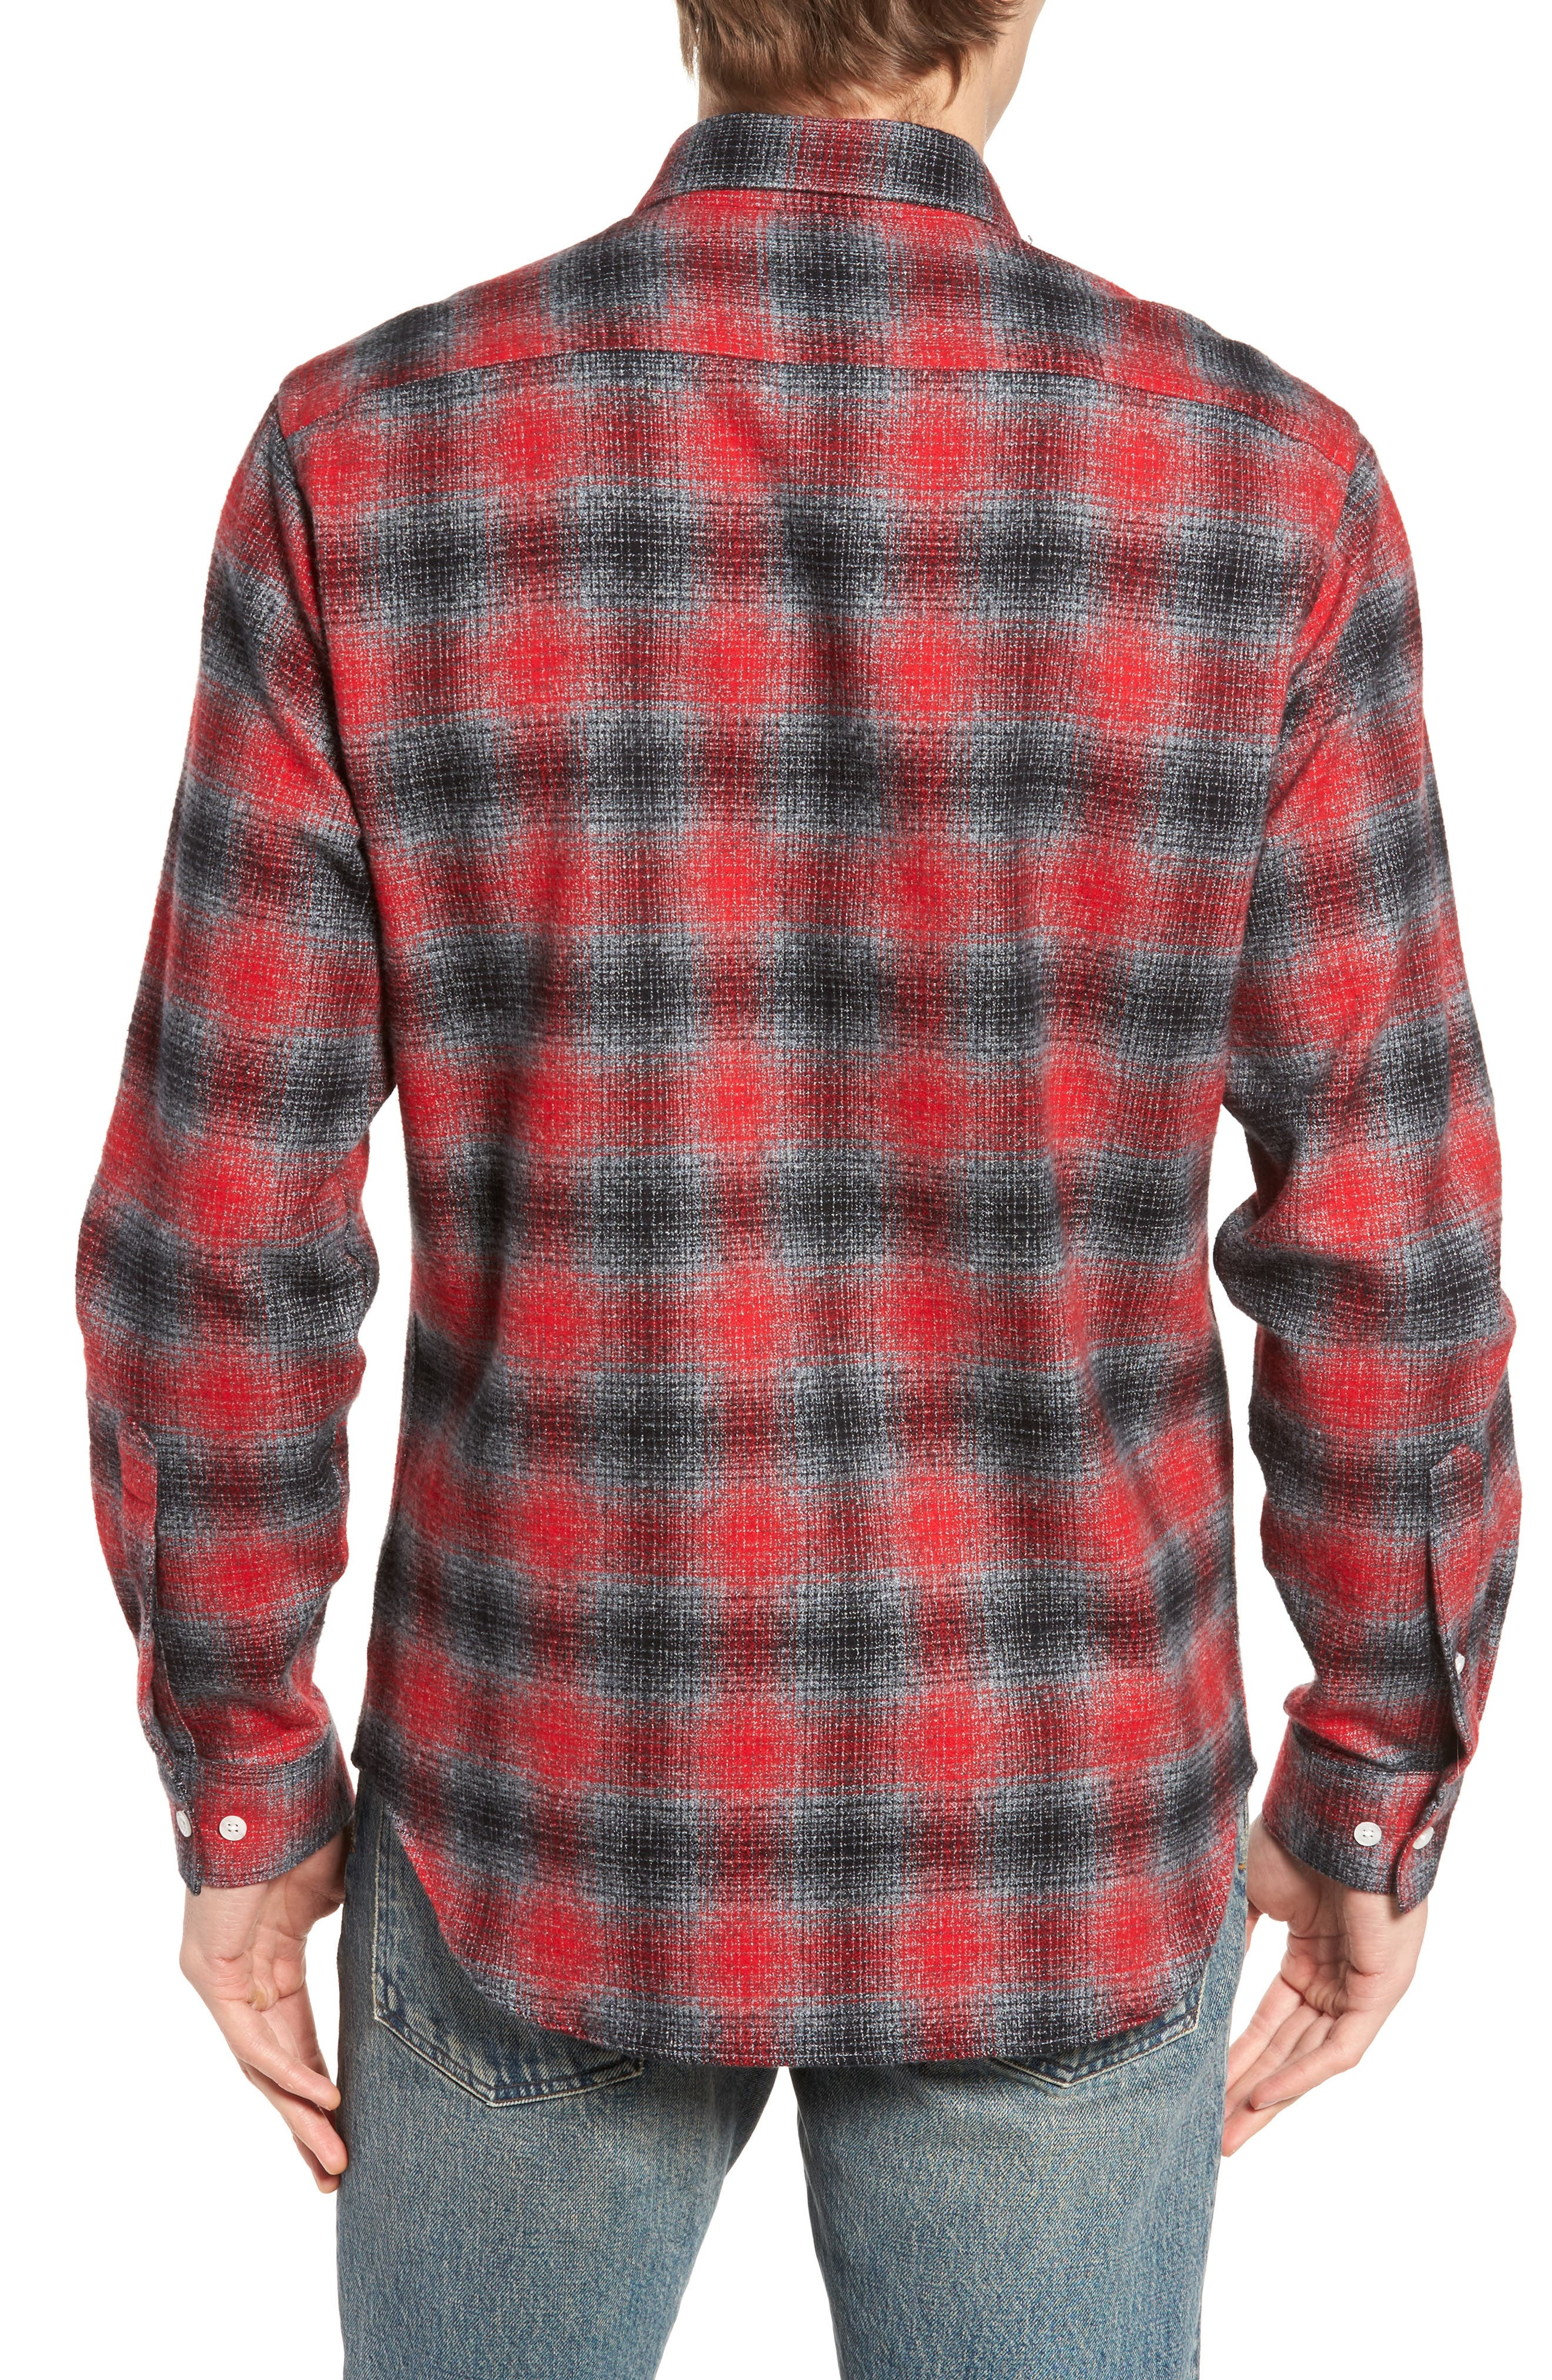 Stowe Slim Fit Plaid Sport Shirt,                             Alternate thumbnail 2, color,                             Platnium Grey